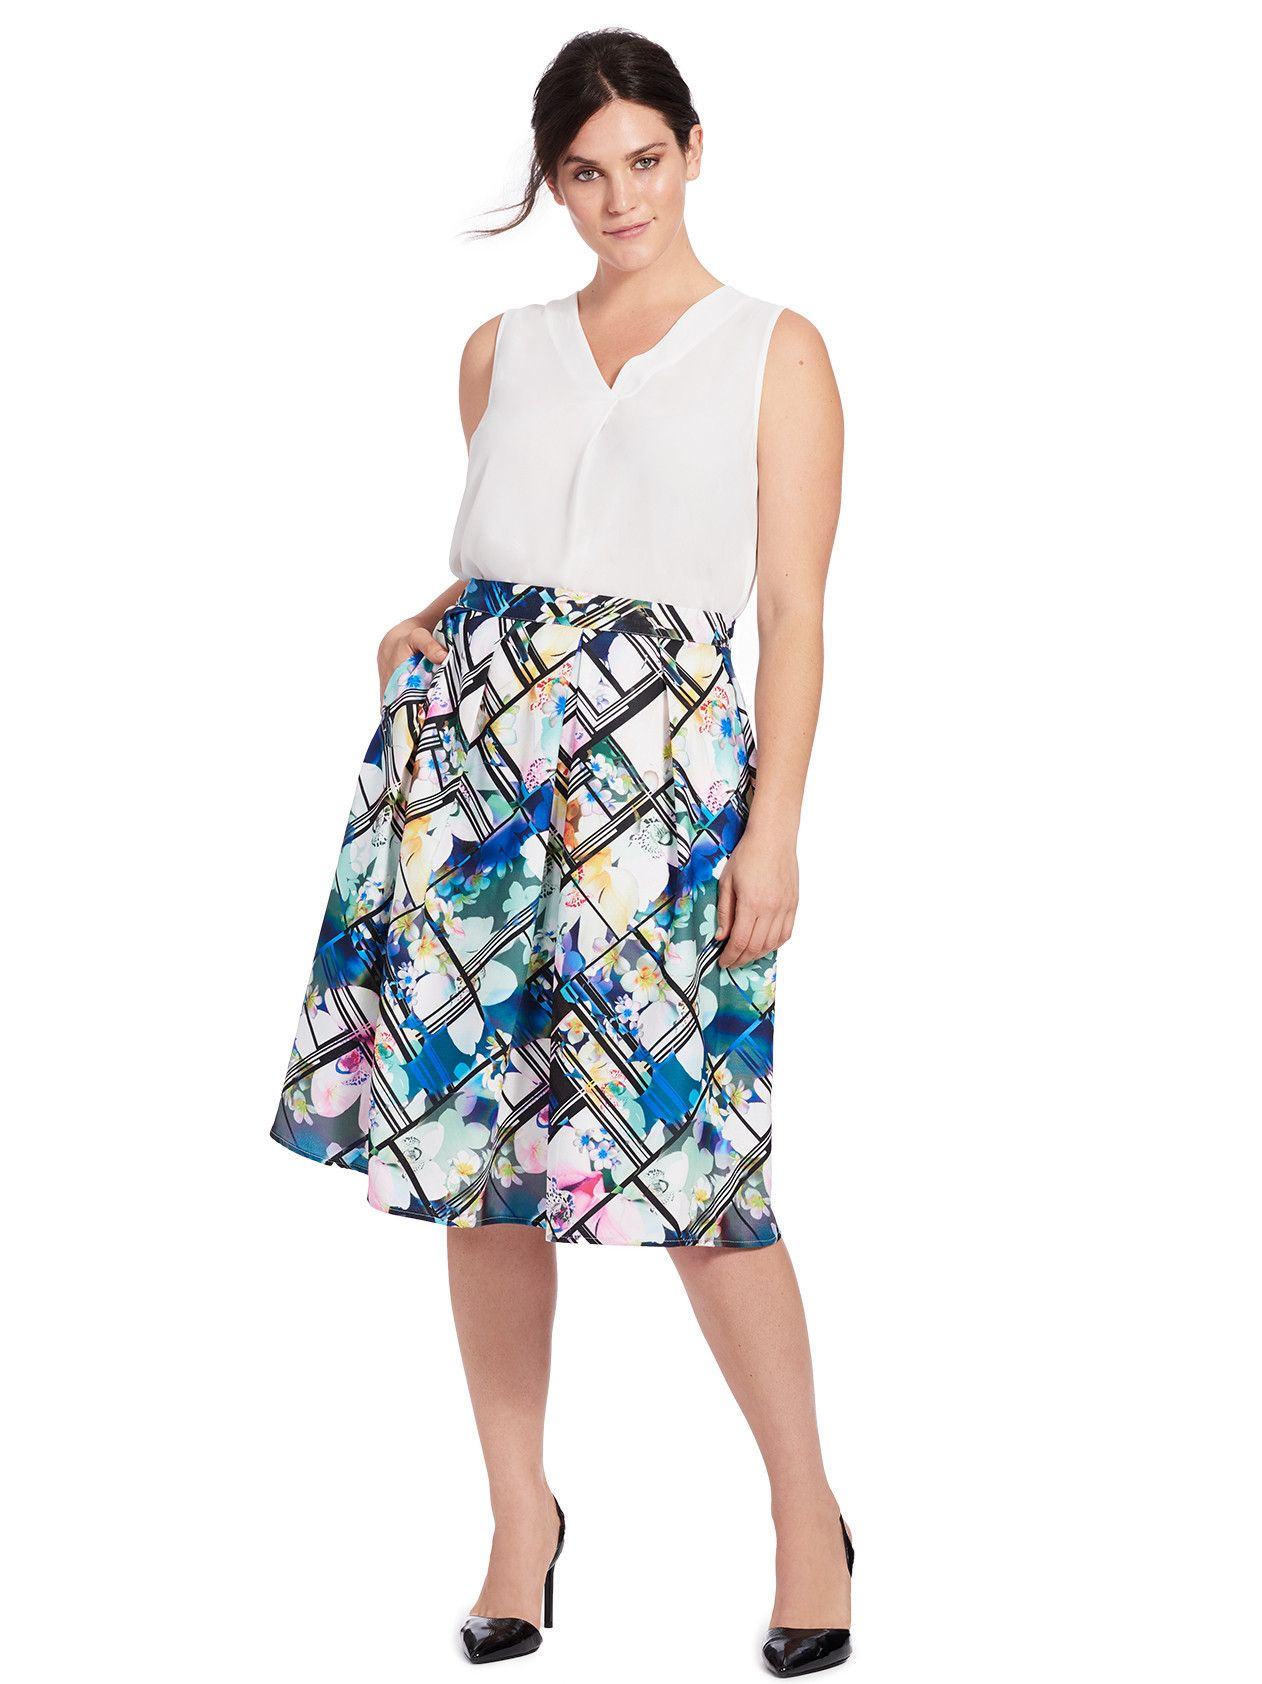 be62538c9e Orchid Floral Skirt | Ali Tate Cutler | Skirts, City chic, Chic